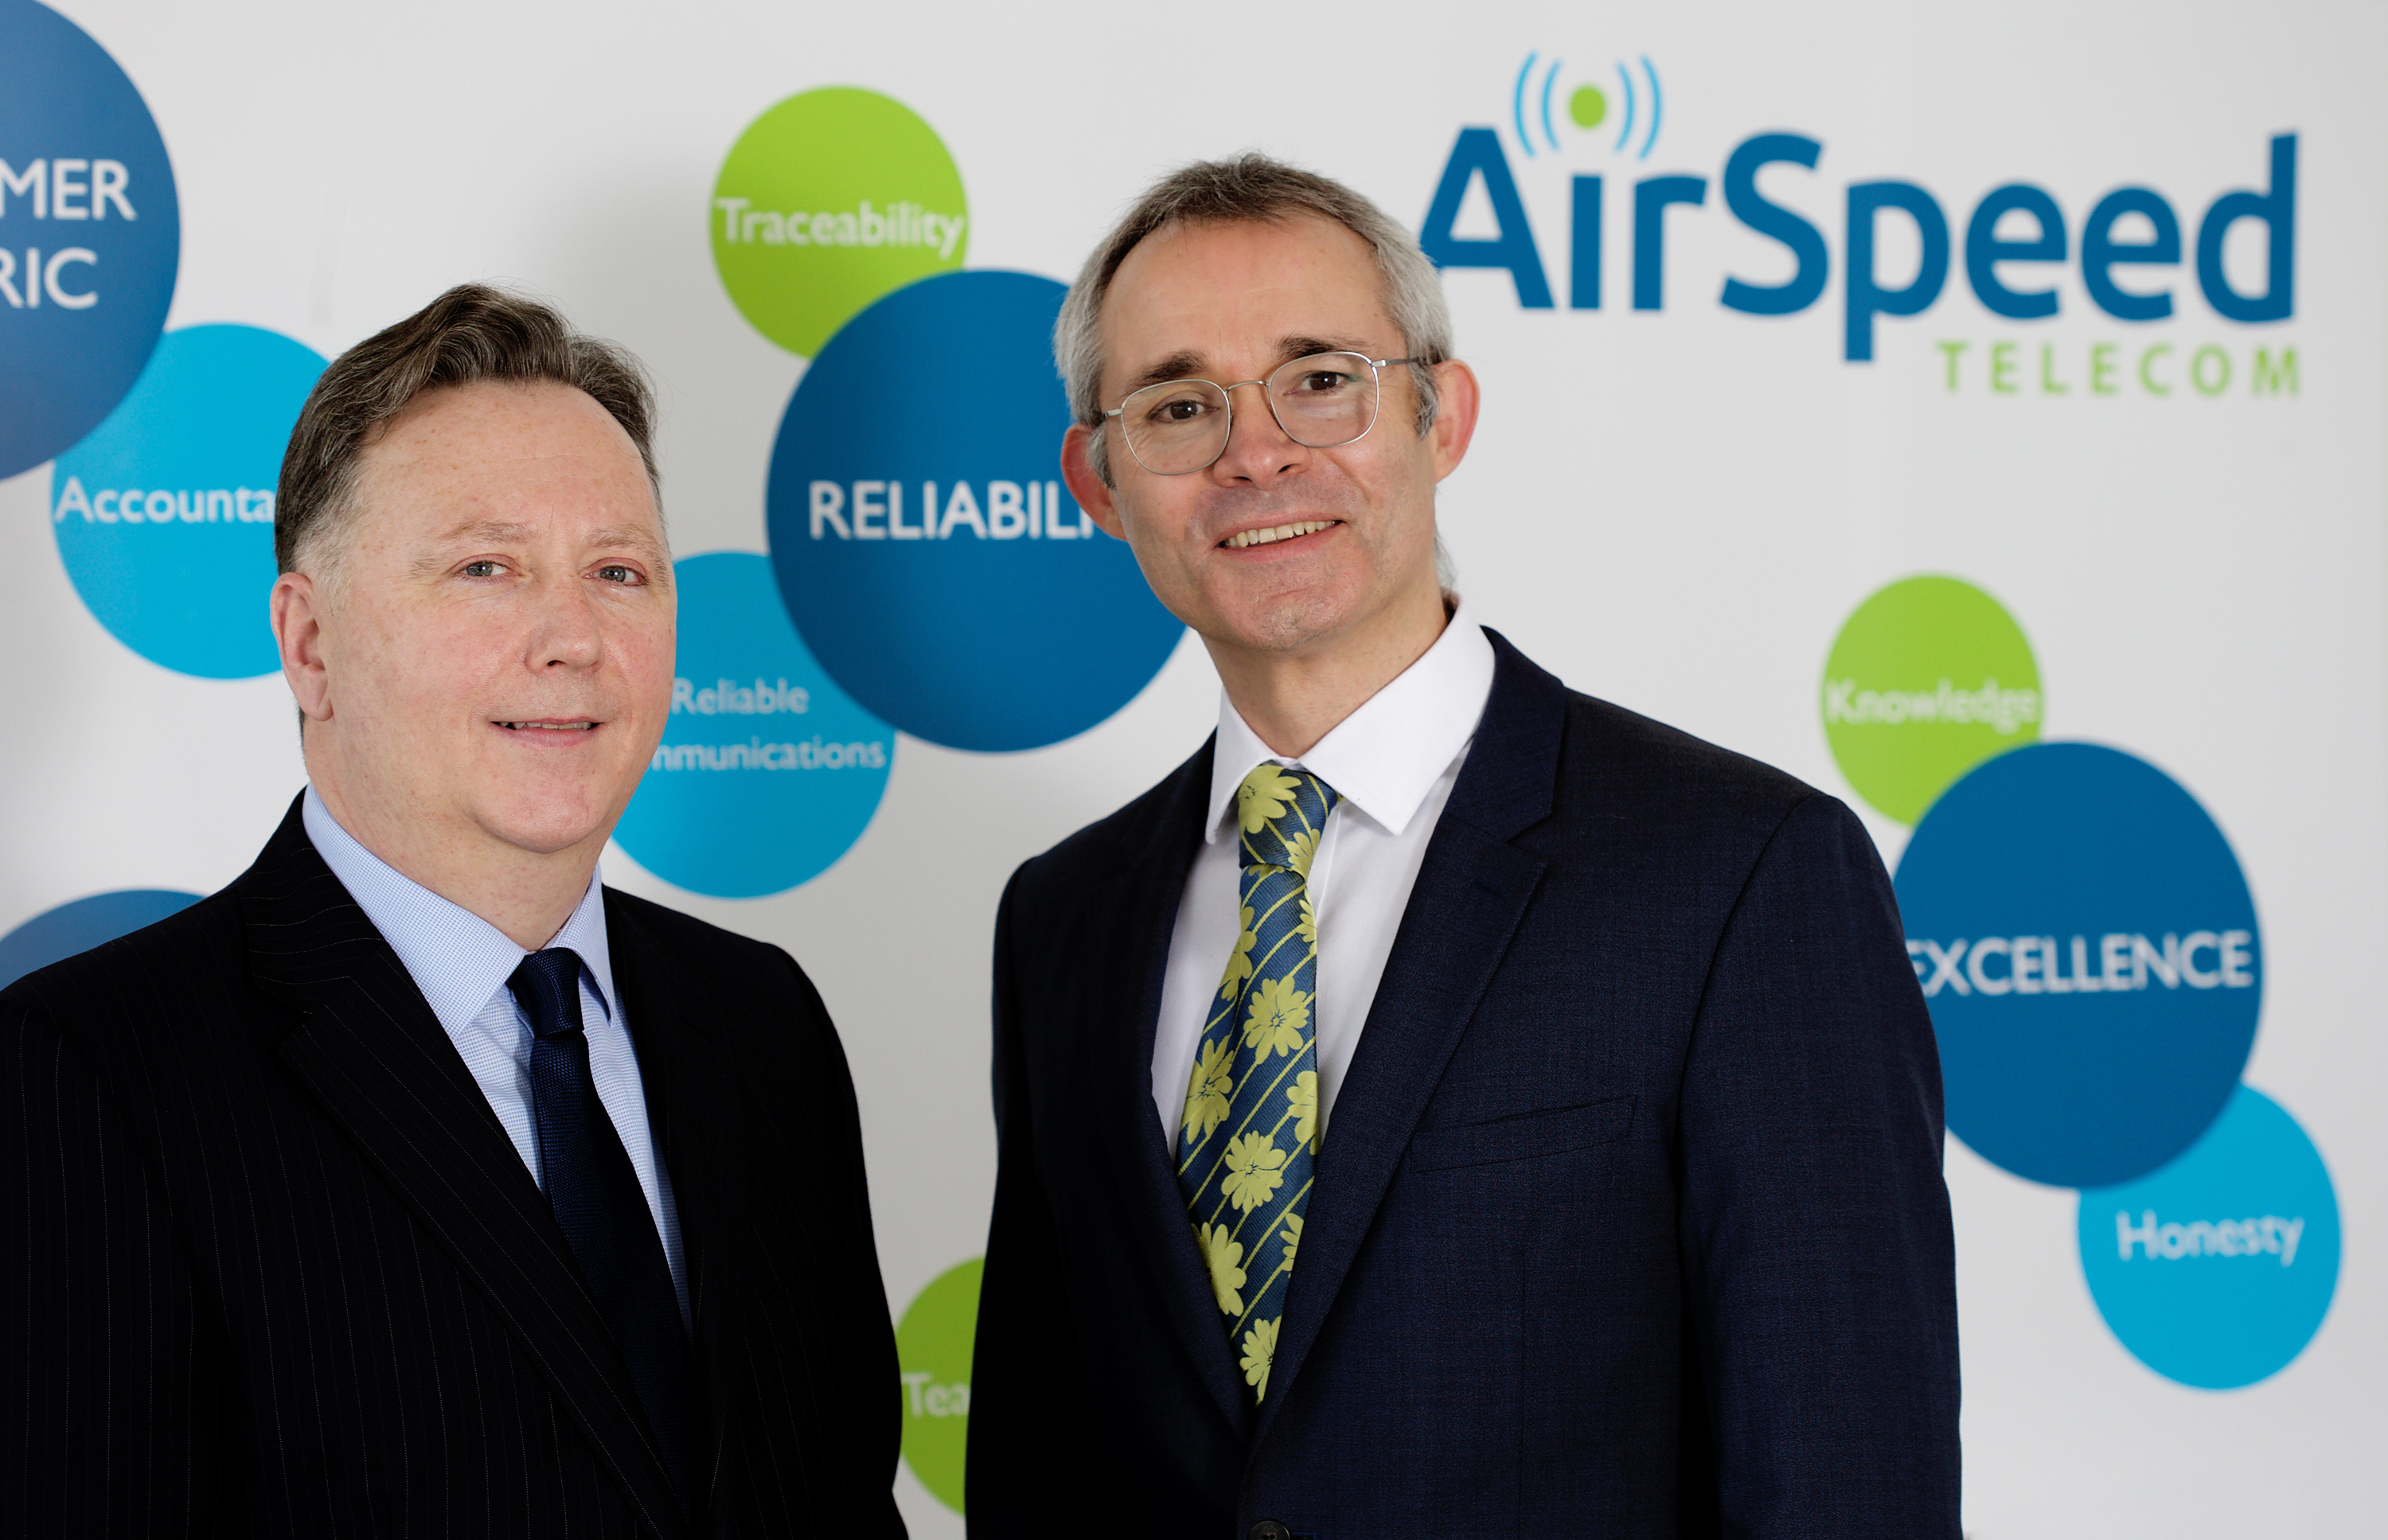 AirSpeed Telecom partners with Intellicom to enhance Voice Solutions